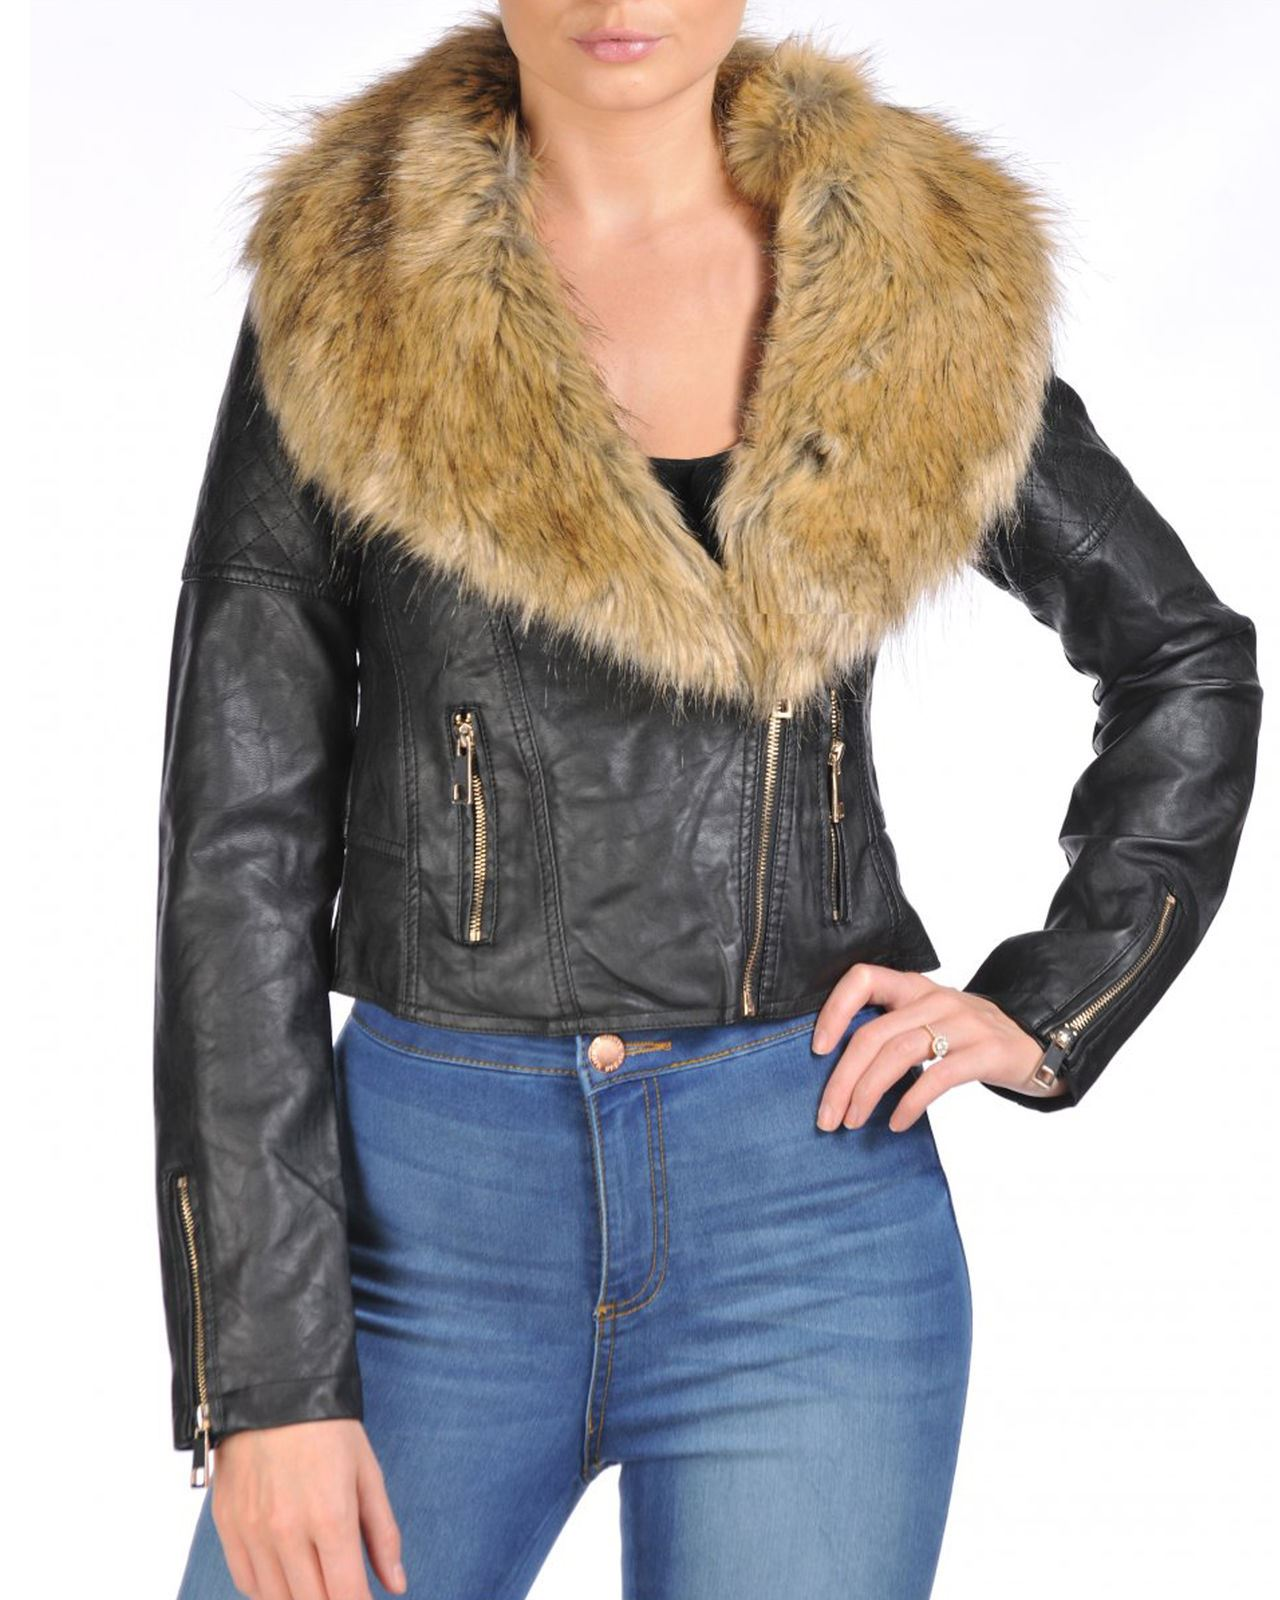 This stylish ladies leather jacket with fur collar features special features about zippers, pockets, full zipped front and snap collar. It is % leather and the fur on a collar is removable. It is % leather and the fur on a collar is removable.